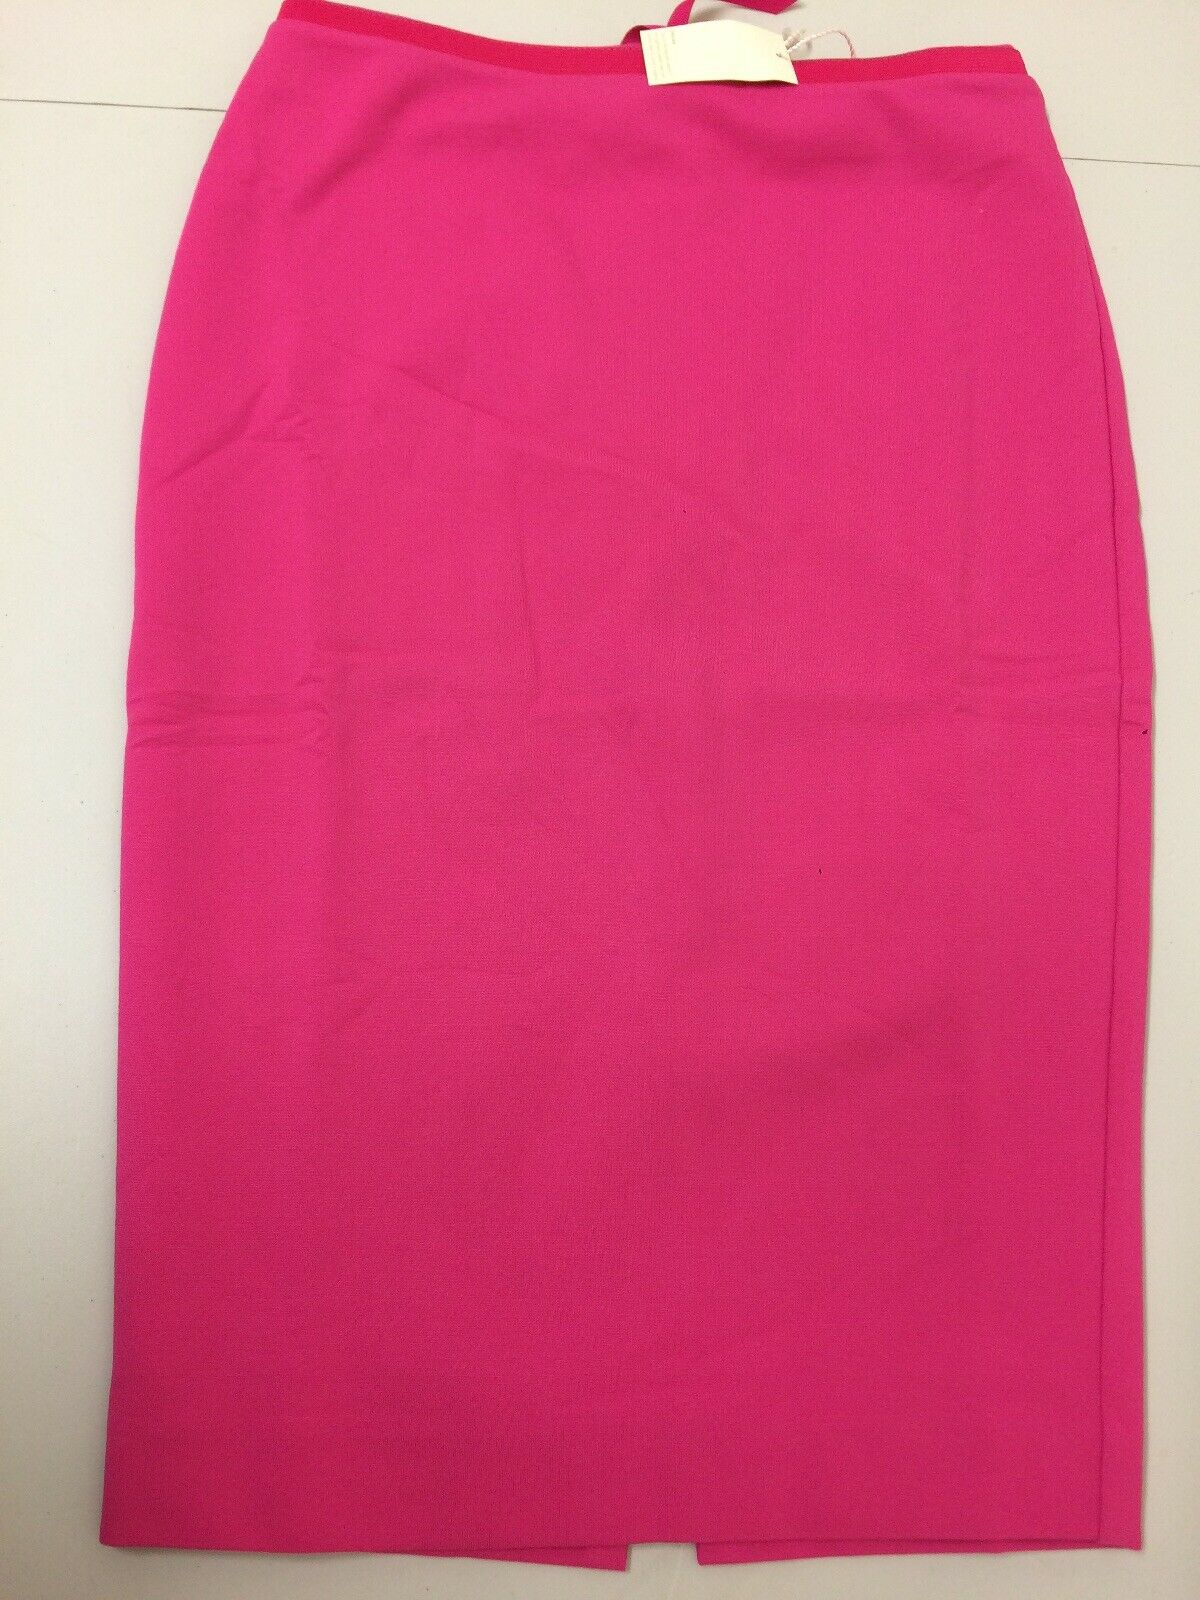 BODEN HAMPSHIRE PONTE SKIRT BY PARTY PINK Size 6 RRP  Box E126